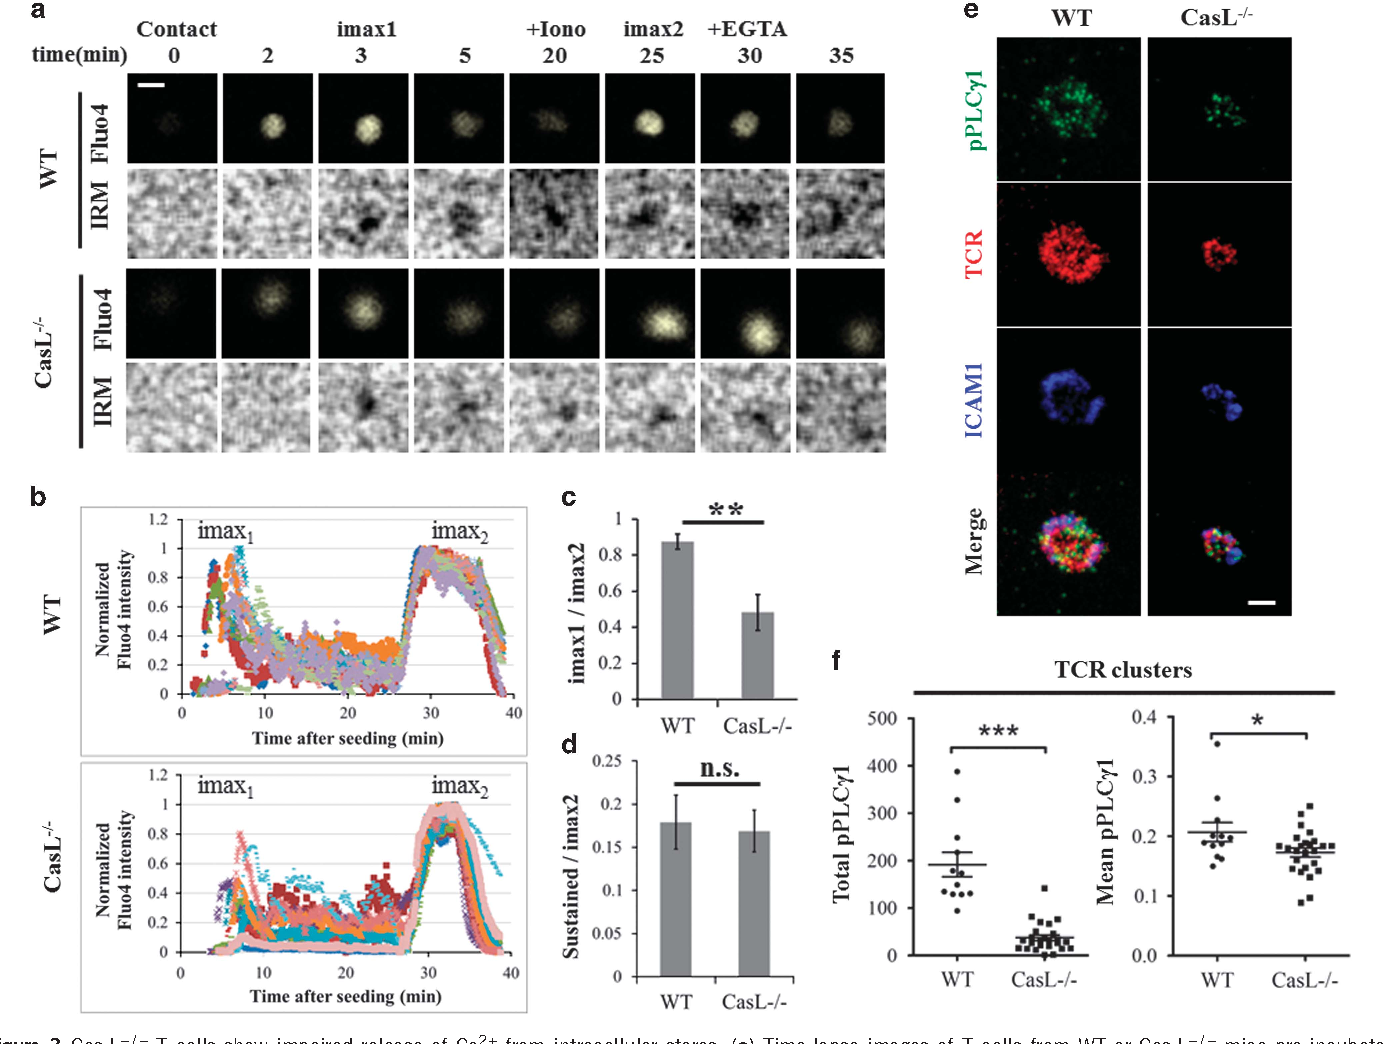 Figure 3 Cas-L− /− T cells show impaired release of Ca2+ from intracellular stores. (a) Time-lapse images of T cells from WT or Cas-L− /− mice pre-incubated with Calcium ion fluorescent dye Fluo-4, and seeded on glass coverslips coated with antibodies against TCR/CD28 and ICAM-1. Changes in free intracellular Ca2+ levels were captured in the 488 nm channel (widefield, Fluo-4 top panel), and images of the contact between a cell and the coverslip were visible through internal reflection microscopy (IRM bottom panel). Ionomycin was added to the medium at ~20 min (+Iono), and EGTA was added at ~30 min. The acquisition rate was 4 s between frames. Scale bar=5 μm. (b) Changes in Ca2+ levels were plotted across time for at least ten individual cells of each cell type from two independent experiments. Fluorescence intensity values were normalized for each individual cell by dividing background-corrected intensity values by the absolute maximum intensity value measured after adding ionomycin (imax2). (c) Levels of free intracellular Ca2+ in Cas-L− /− cells only rise up to 47±9% of their maximum potential (as measured by imax2), whereas in control WT cells Ca2+ levels peak at 87±11% of their maximal potential (P-value⩽0.005). (d) No significant change in the levels of sustained free intracellular Ca2+ (sustained/imax2) between Cas-L− /− and control WT cells ('n.s.': non-significant; error bars represent s.e.m. from two independent experiments). (e) PLCγ1 phosphorylation (pPLCγ1, green) is reduced at the synapse of Cas-L− /− T cells. Scale bar=5 μm. (f) Co-localization of phospho-PLCγ1 with TCR microclusters is impaired in Cas-L− /− cells. Dot plots display the median (central line)±1.5× interquartile range (whiskers). One asterisk means P-value⩽0.05, three asterisks mean P-value⩽0.0005; data represent at least 30 cells from two independent experiments.